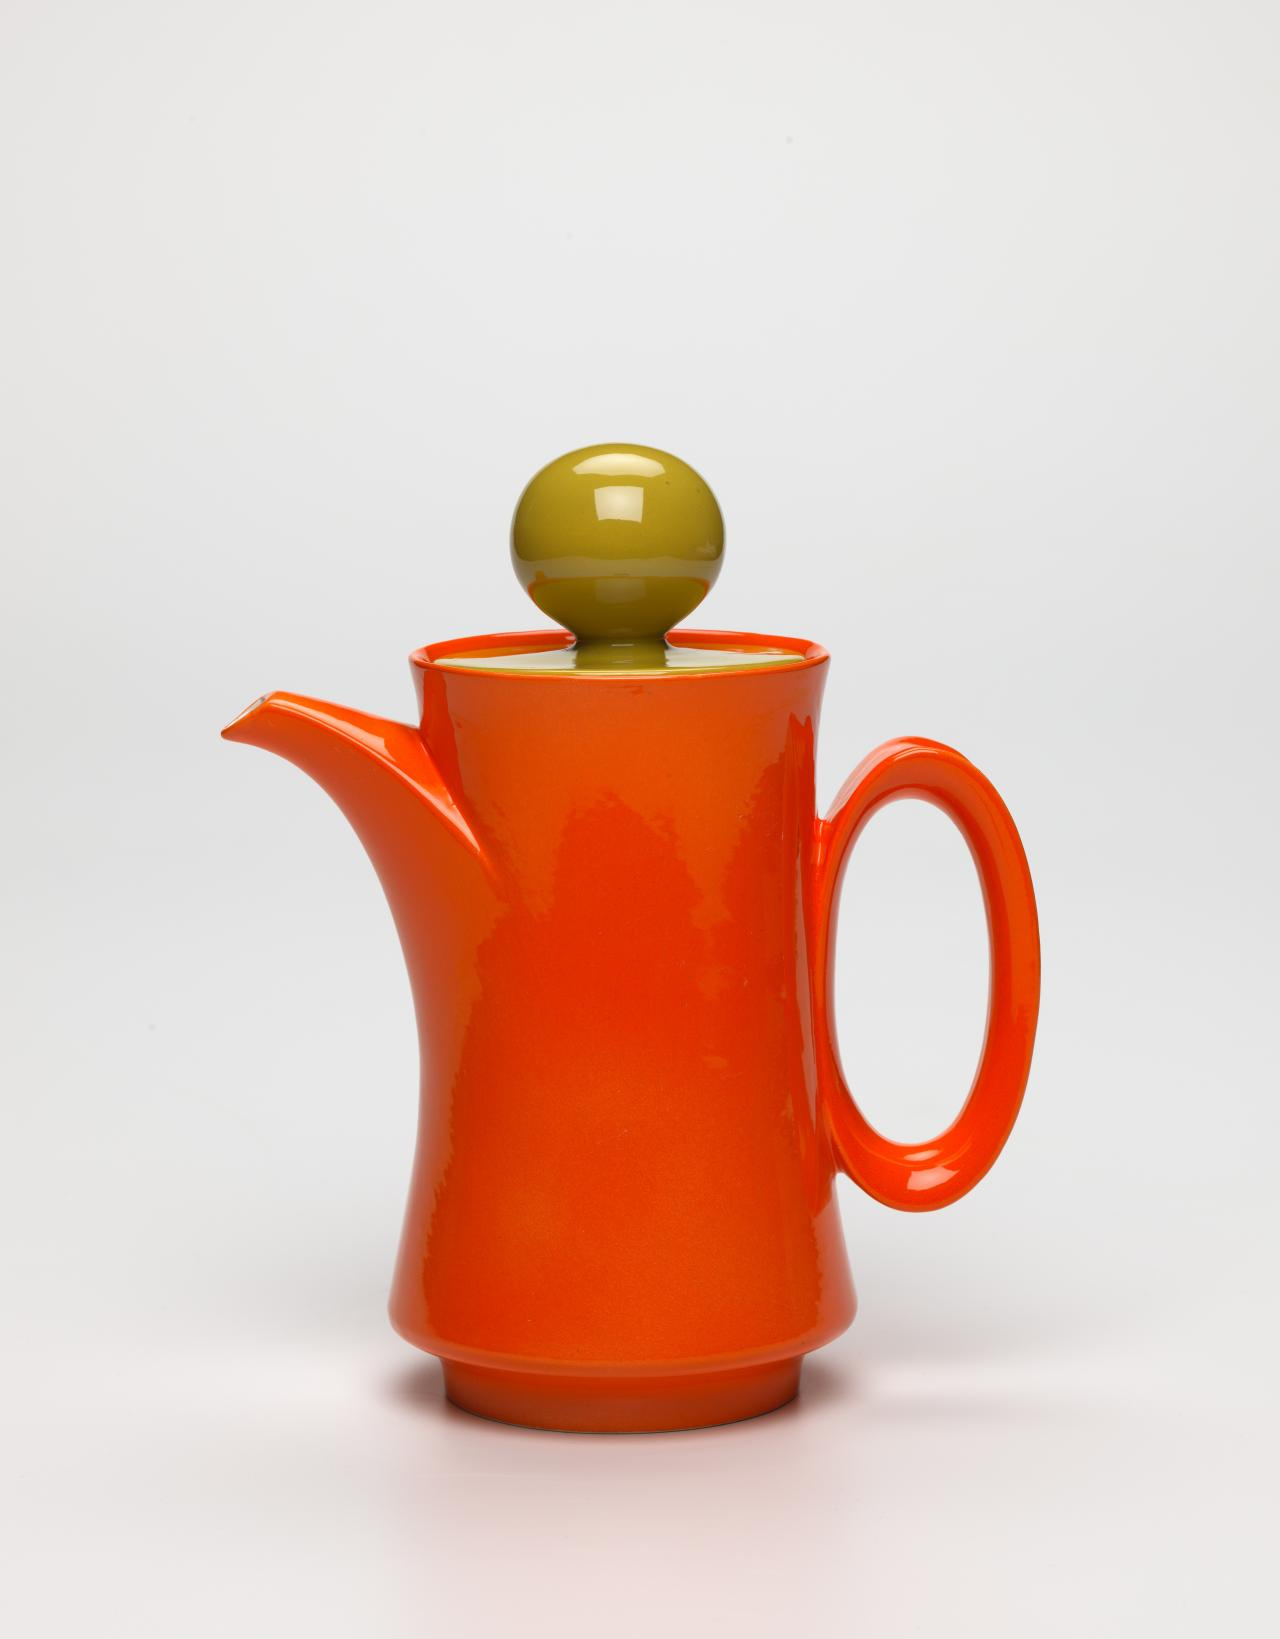 MANCER (manufacturer) Coffee service (1970s)